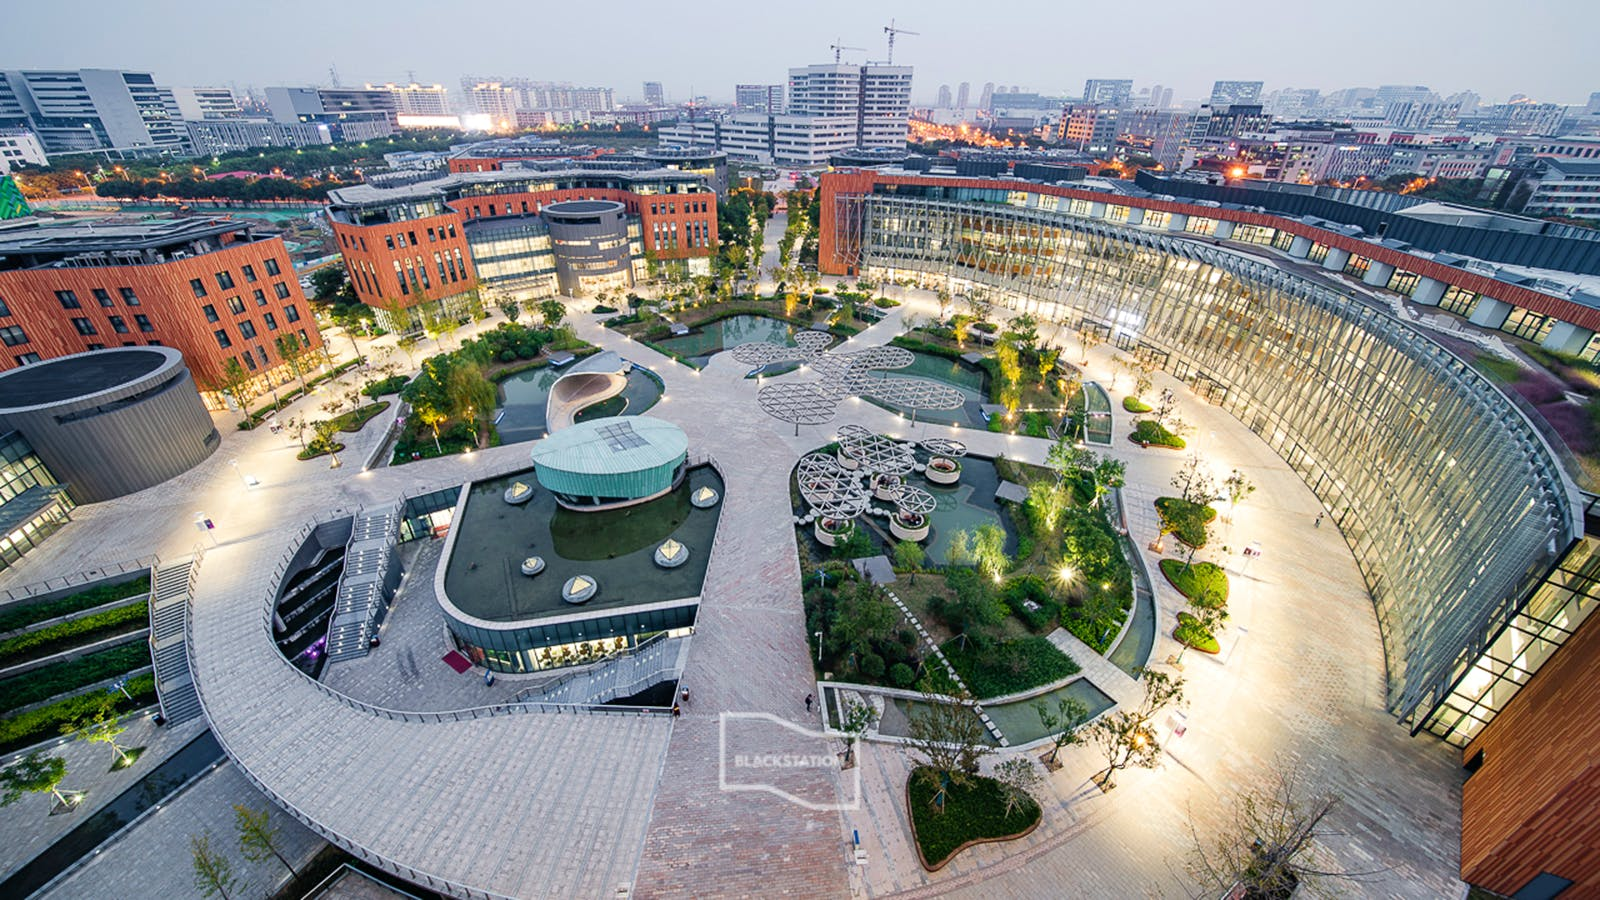 The Asia Institute Expands Partnership with the University of Pittsburgh  for Spring 2021 Program in China - The Asia Institute